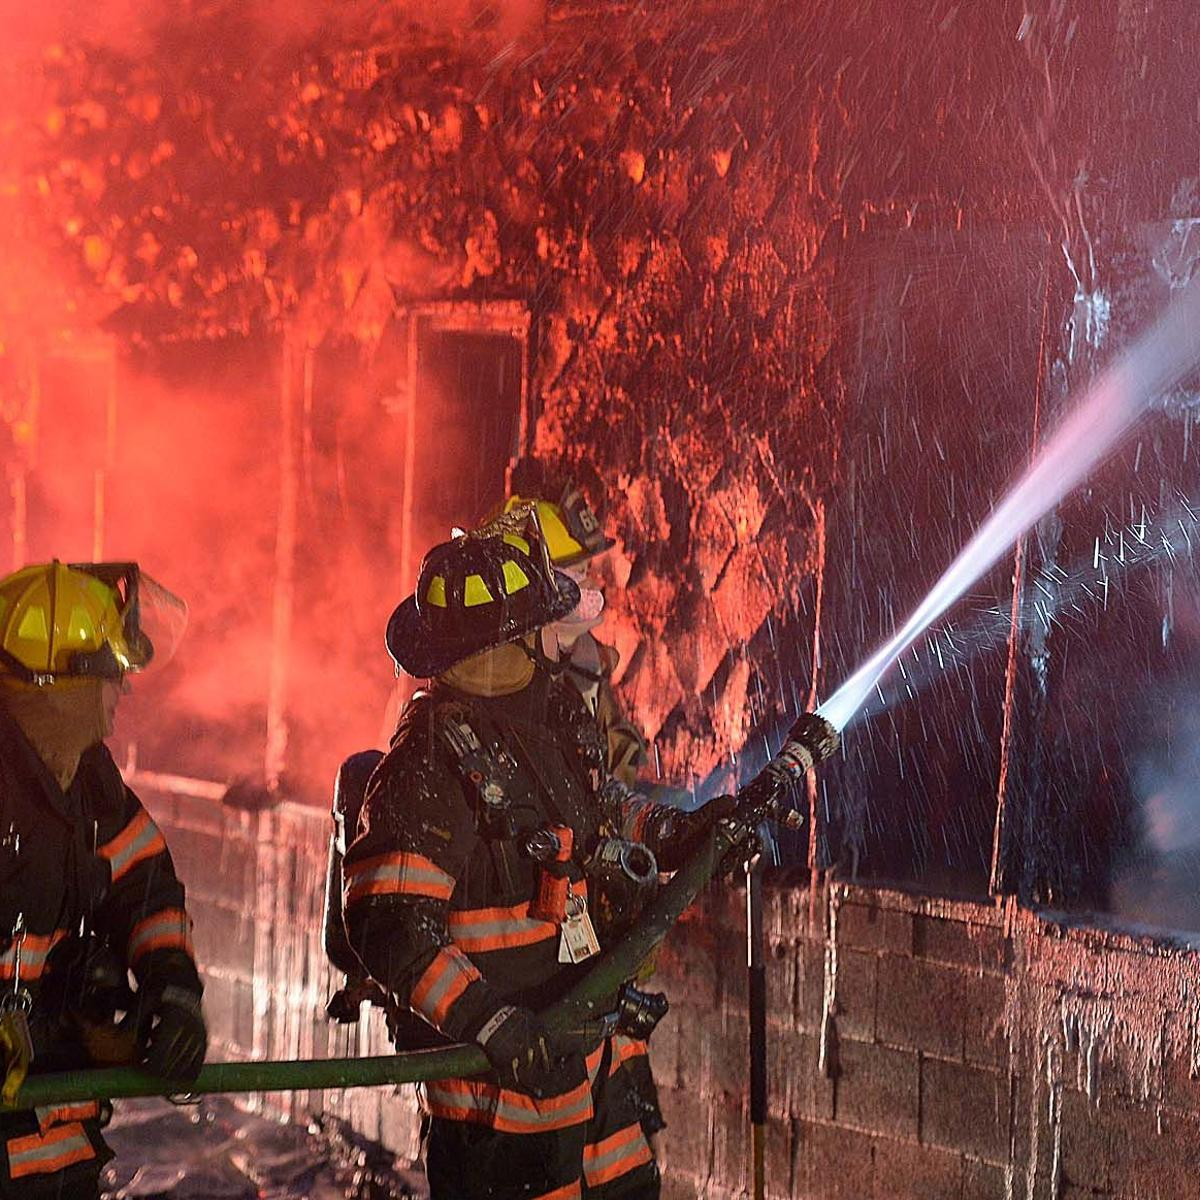 5 displaced by fire in New Cumberland | The Sentinel: News